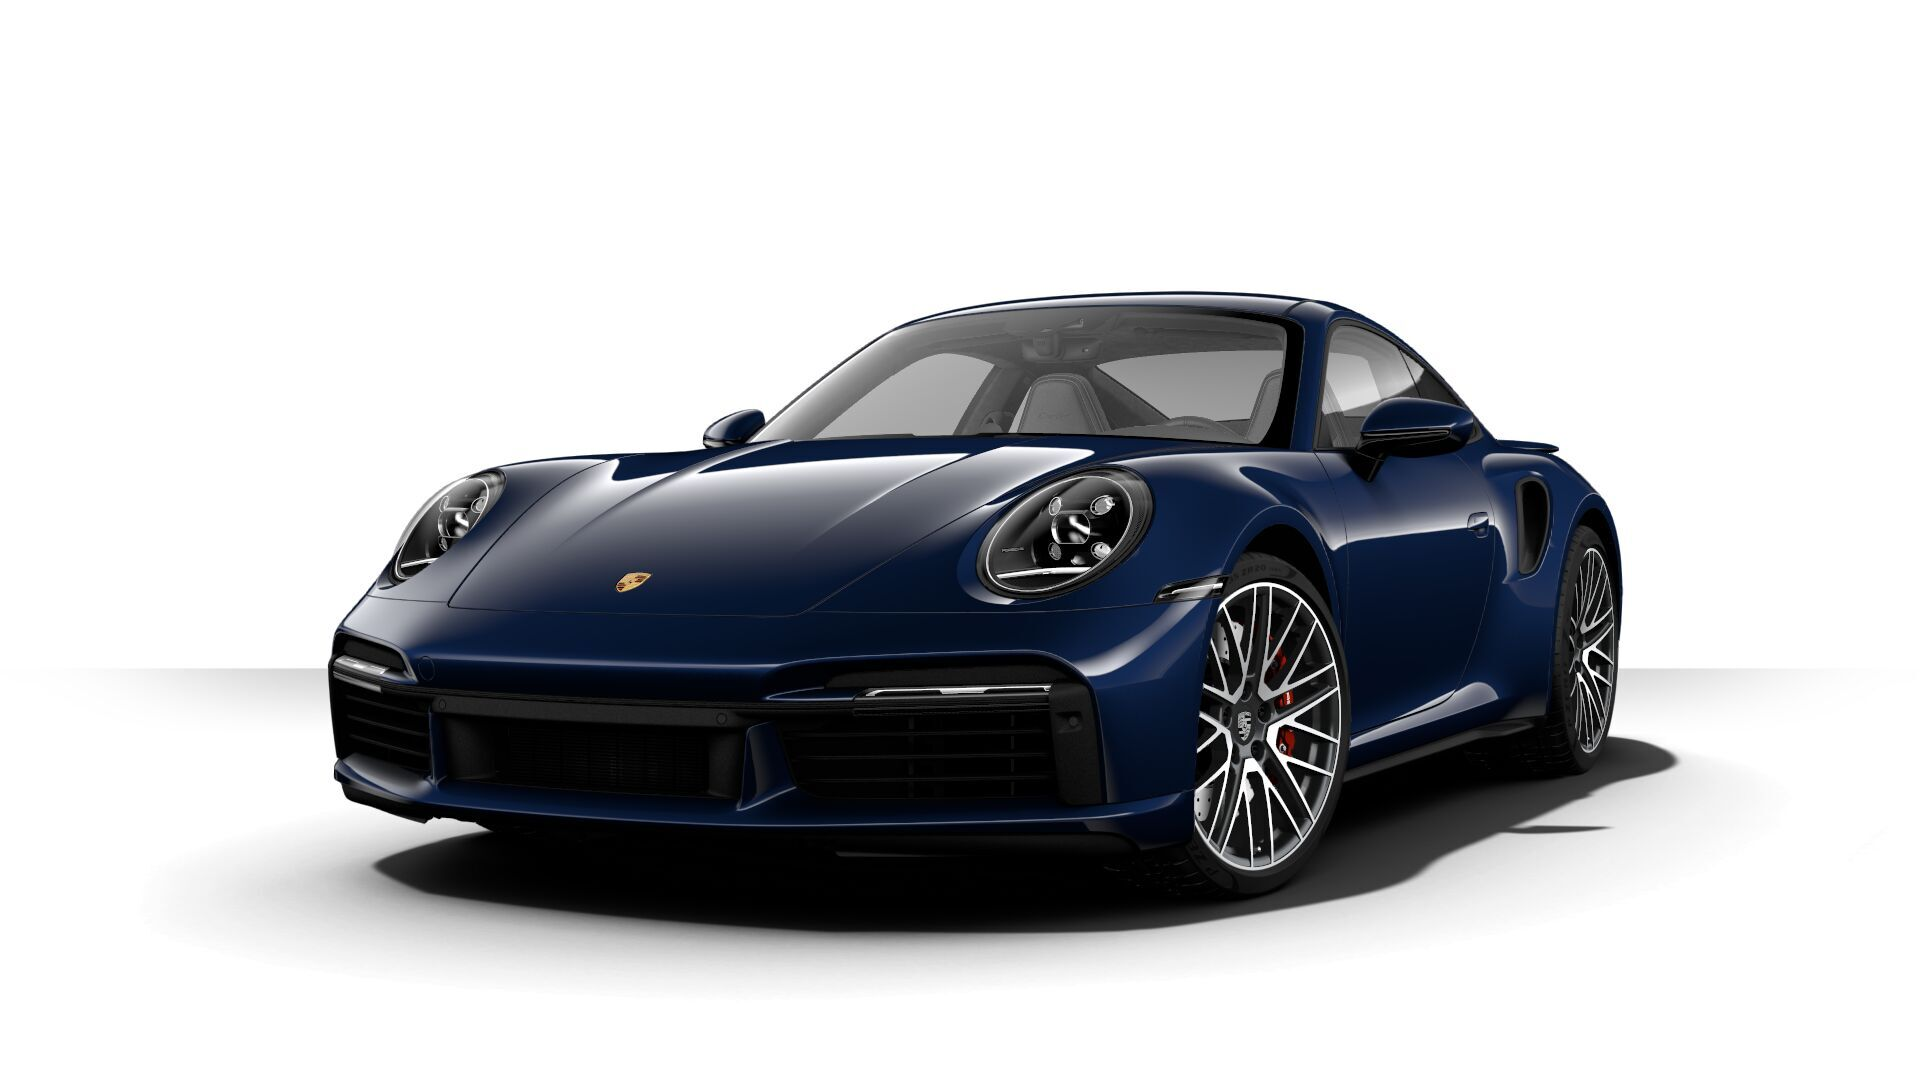 New 2020 Porsche 911 Turbo | Porsche Exchange